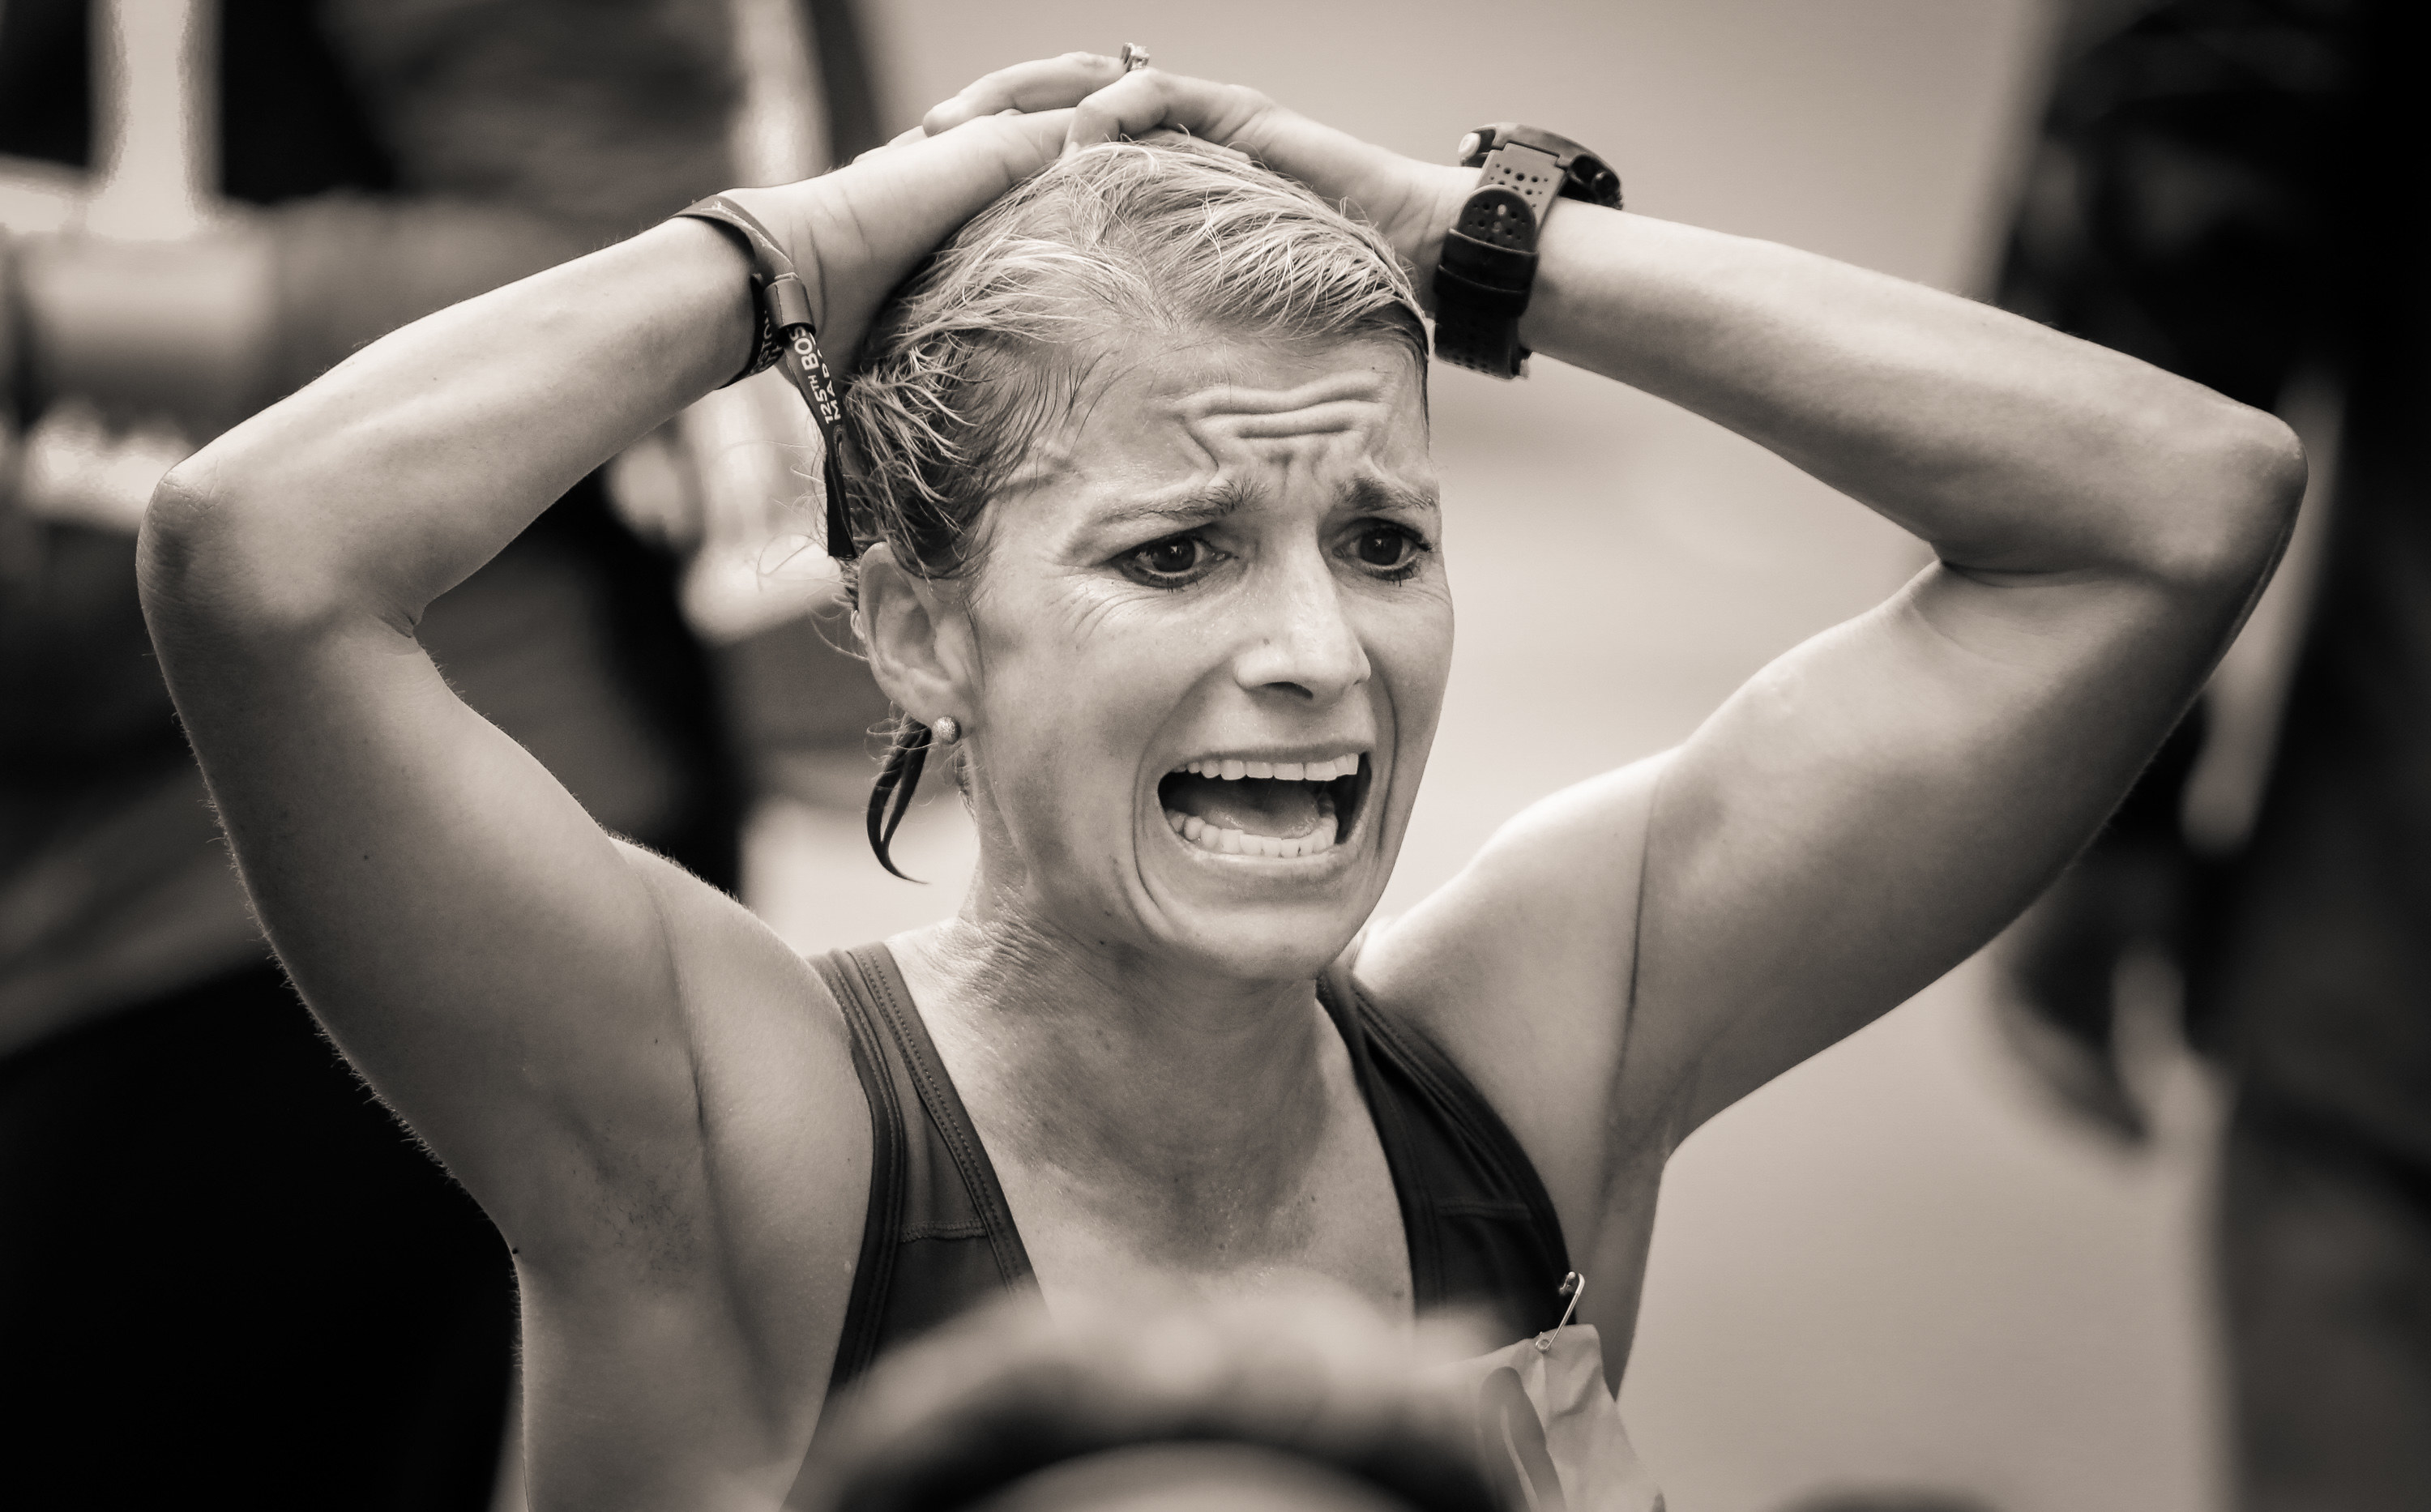 A woman grimaces at the finish line